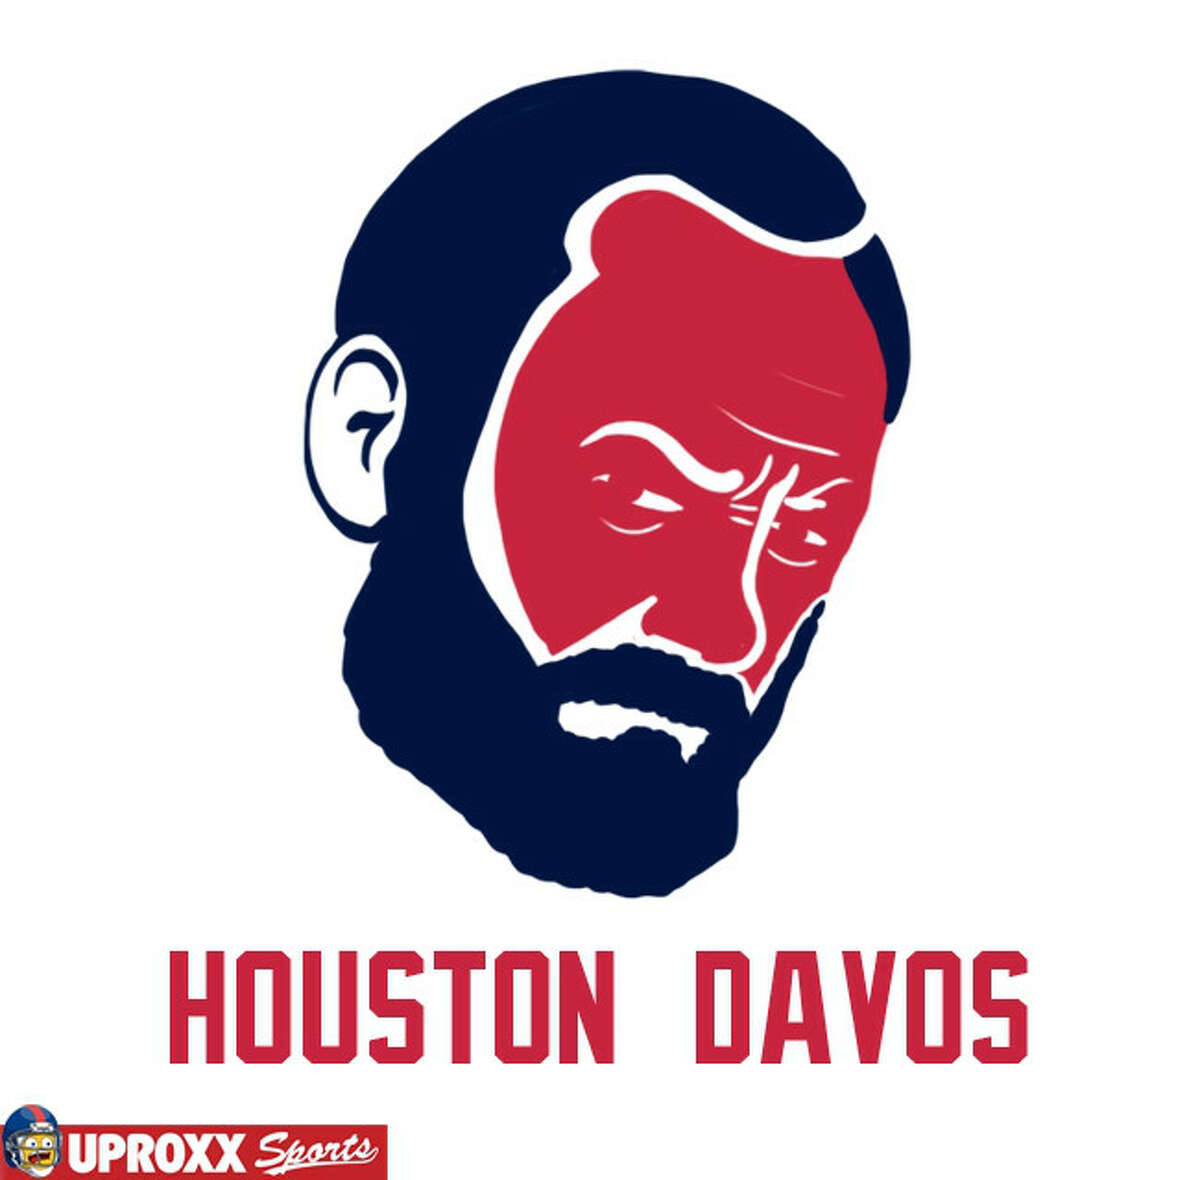 Houston Texans - Davos Seaworth Davos is a competent player who nobody hates, but doesn't seem to get a lot of respect anyway. But he's still around, he's got all the tools, something has to happen with him eventually, right?